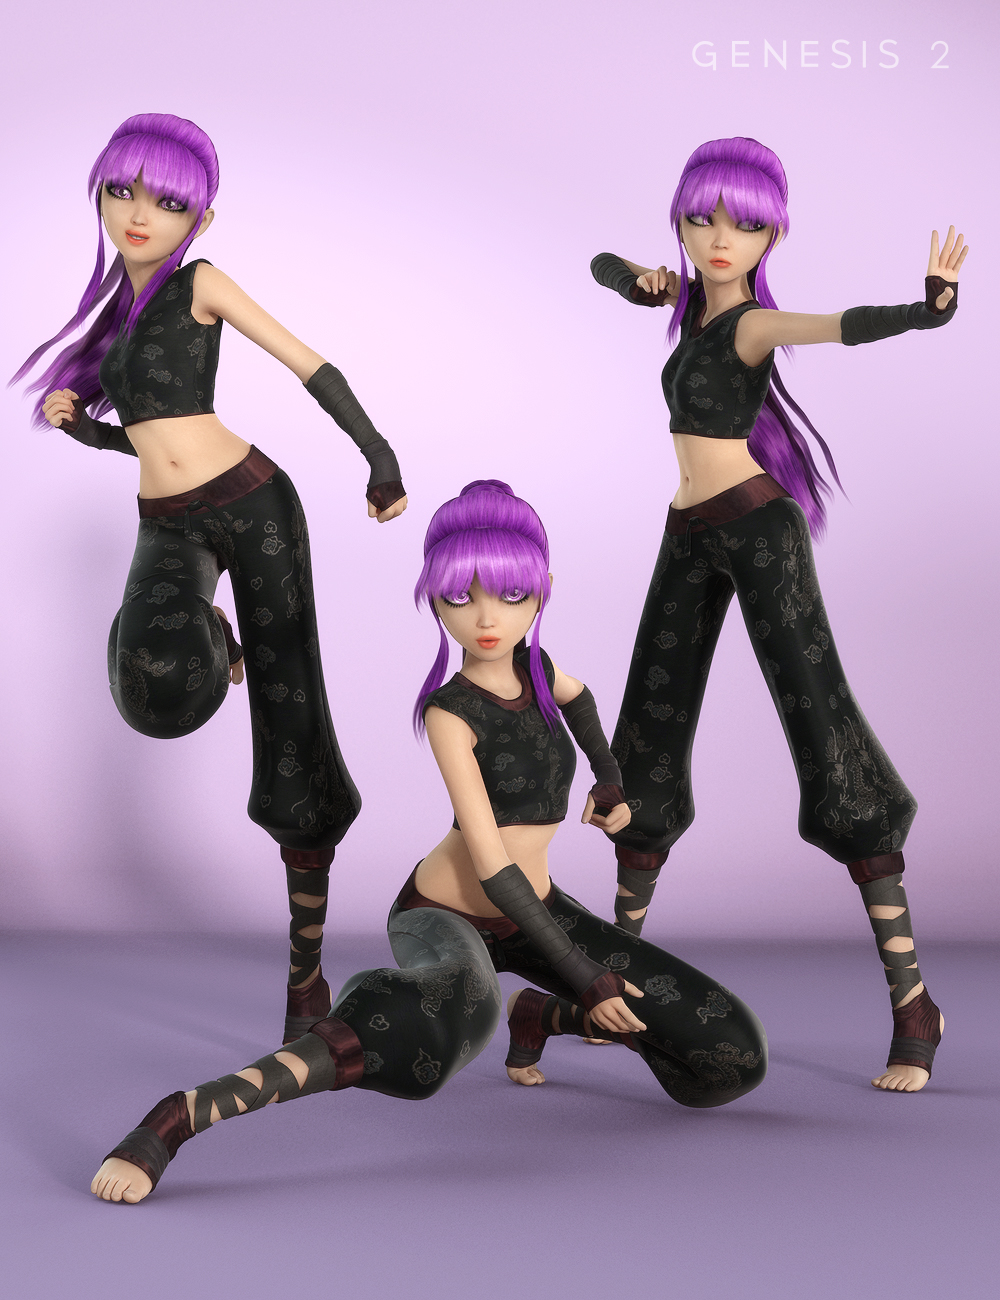 i13 Manga Style by: ironman13, 3D Models by Daz 3D